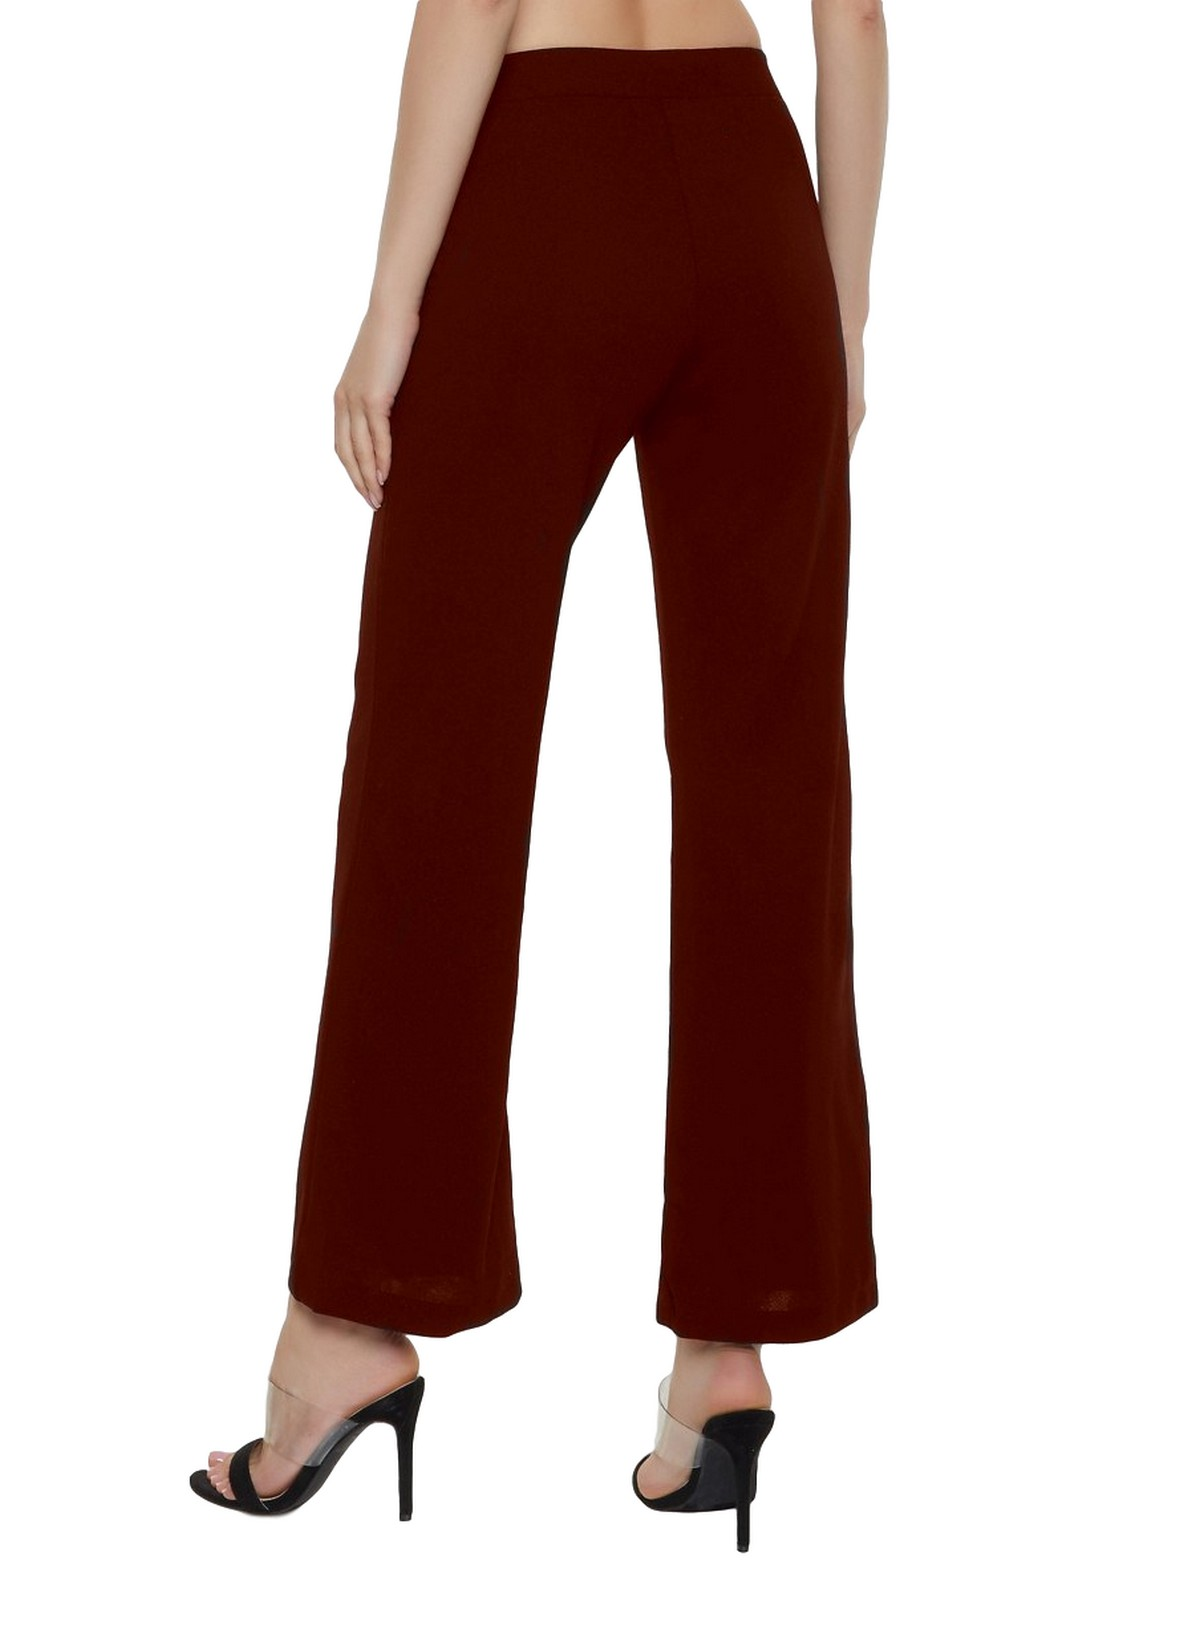 Slim Fit Culottes Trousers in Maroon